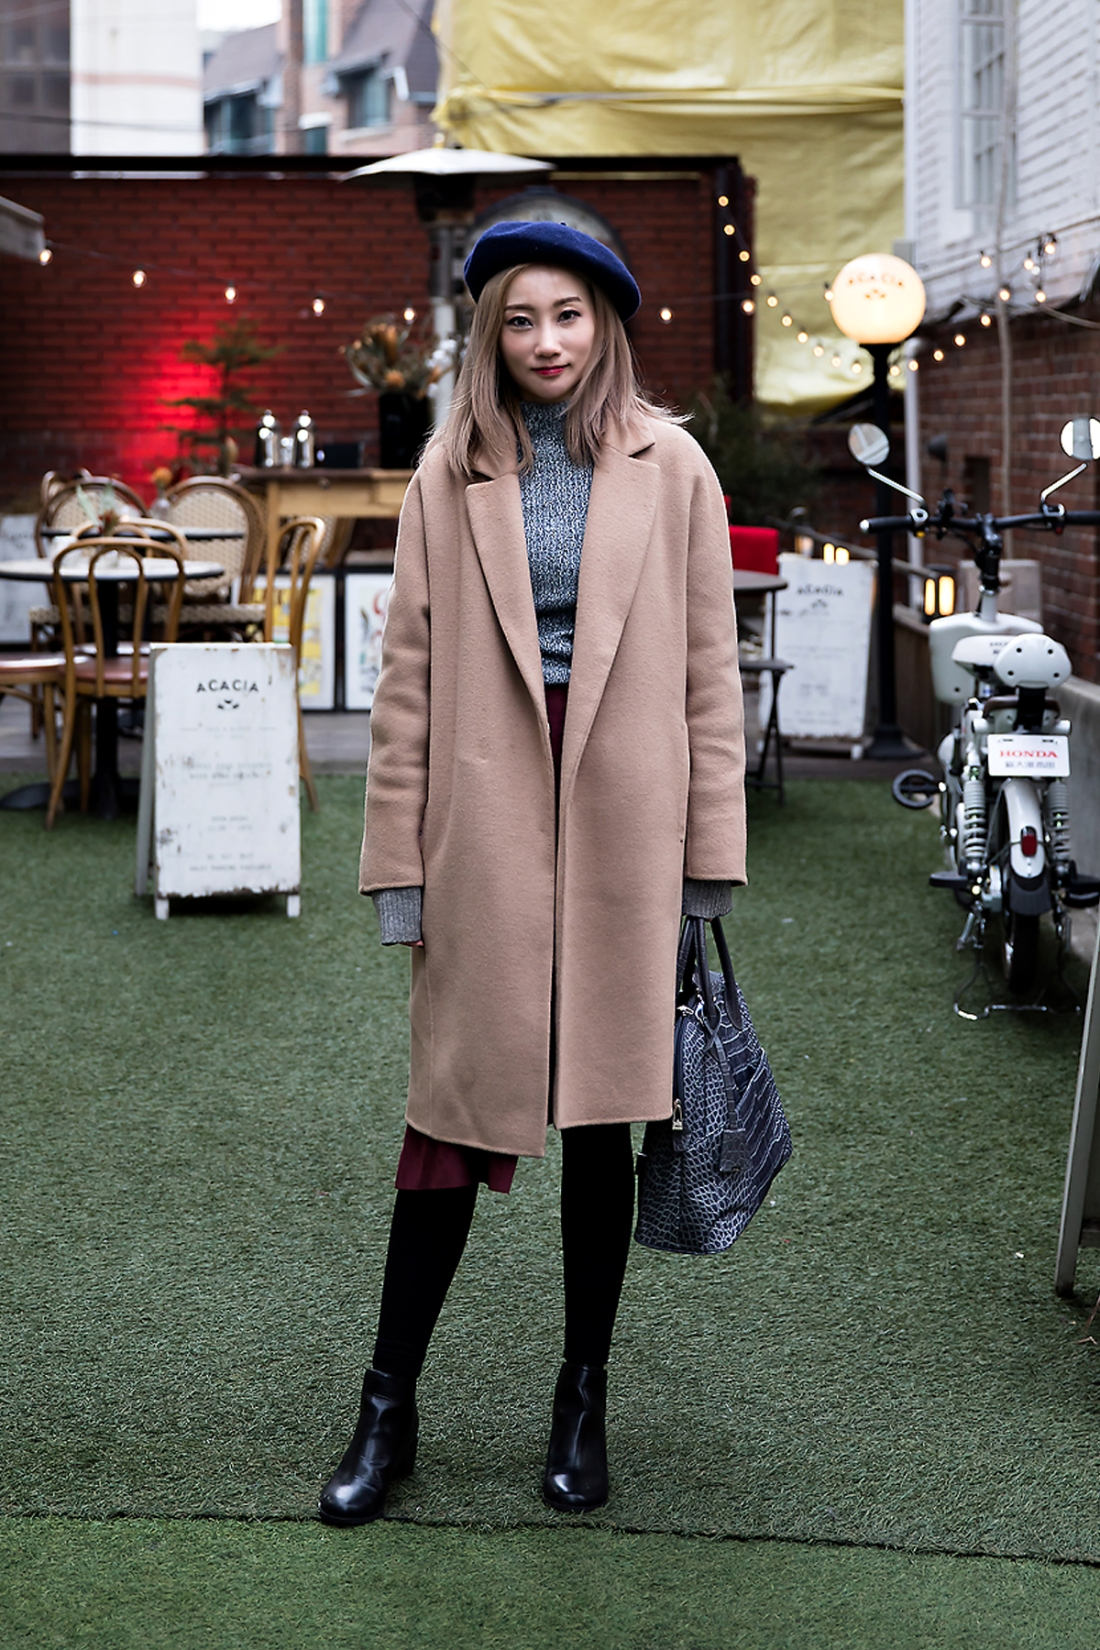 Kim Eunsung, Street Fashion 2017 in SEOUL.jpg